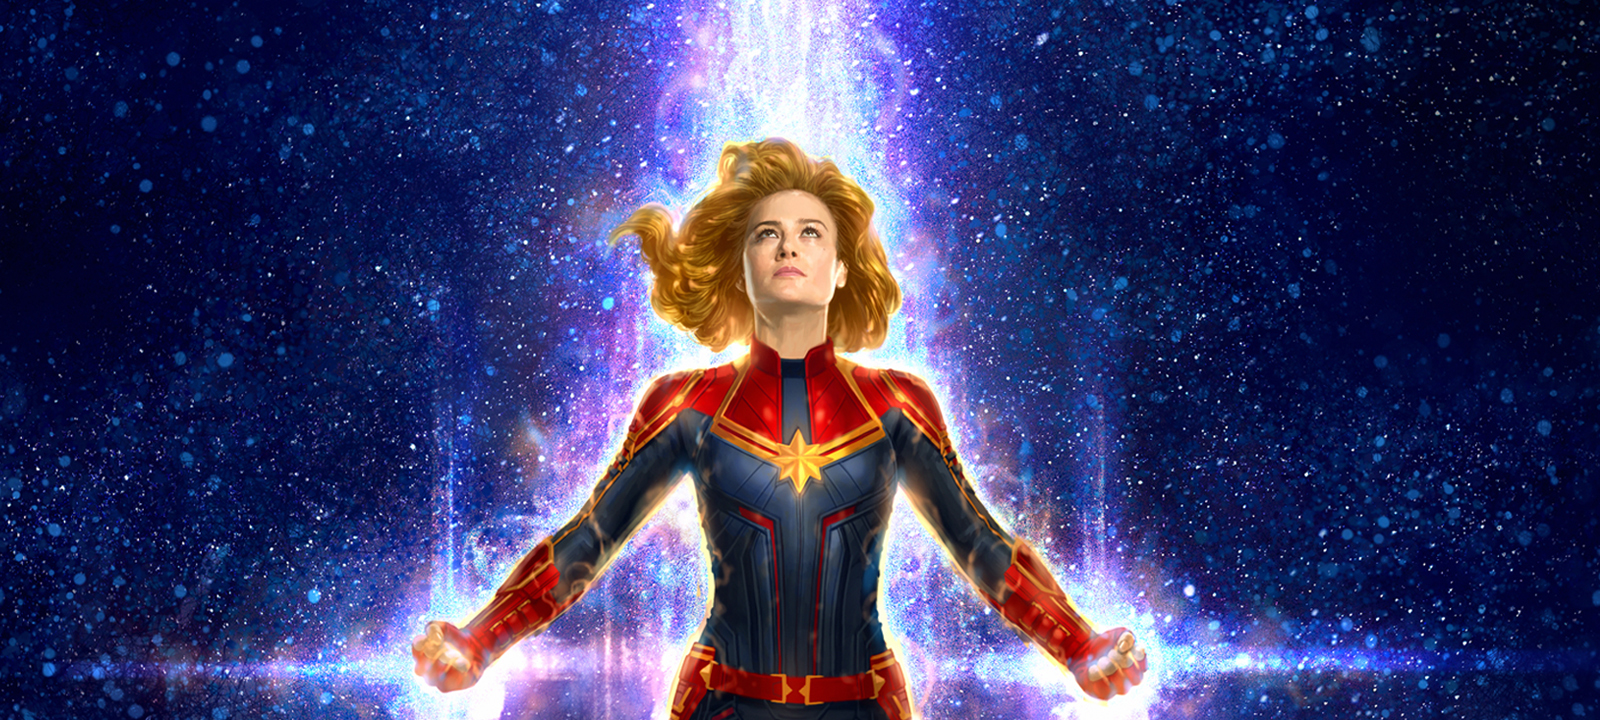 The Art of Captain Marvel: An Evening of Visual Development with Marvel Studios